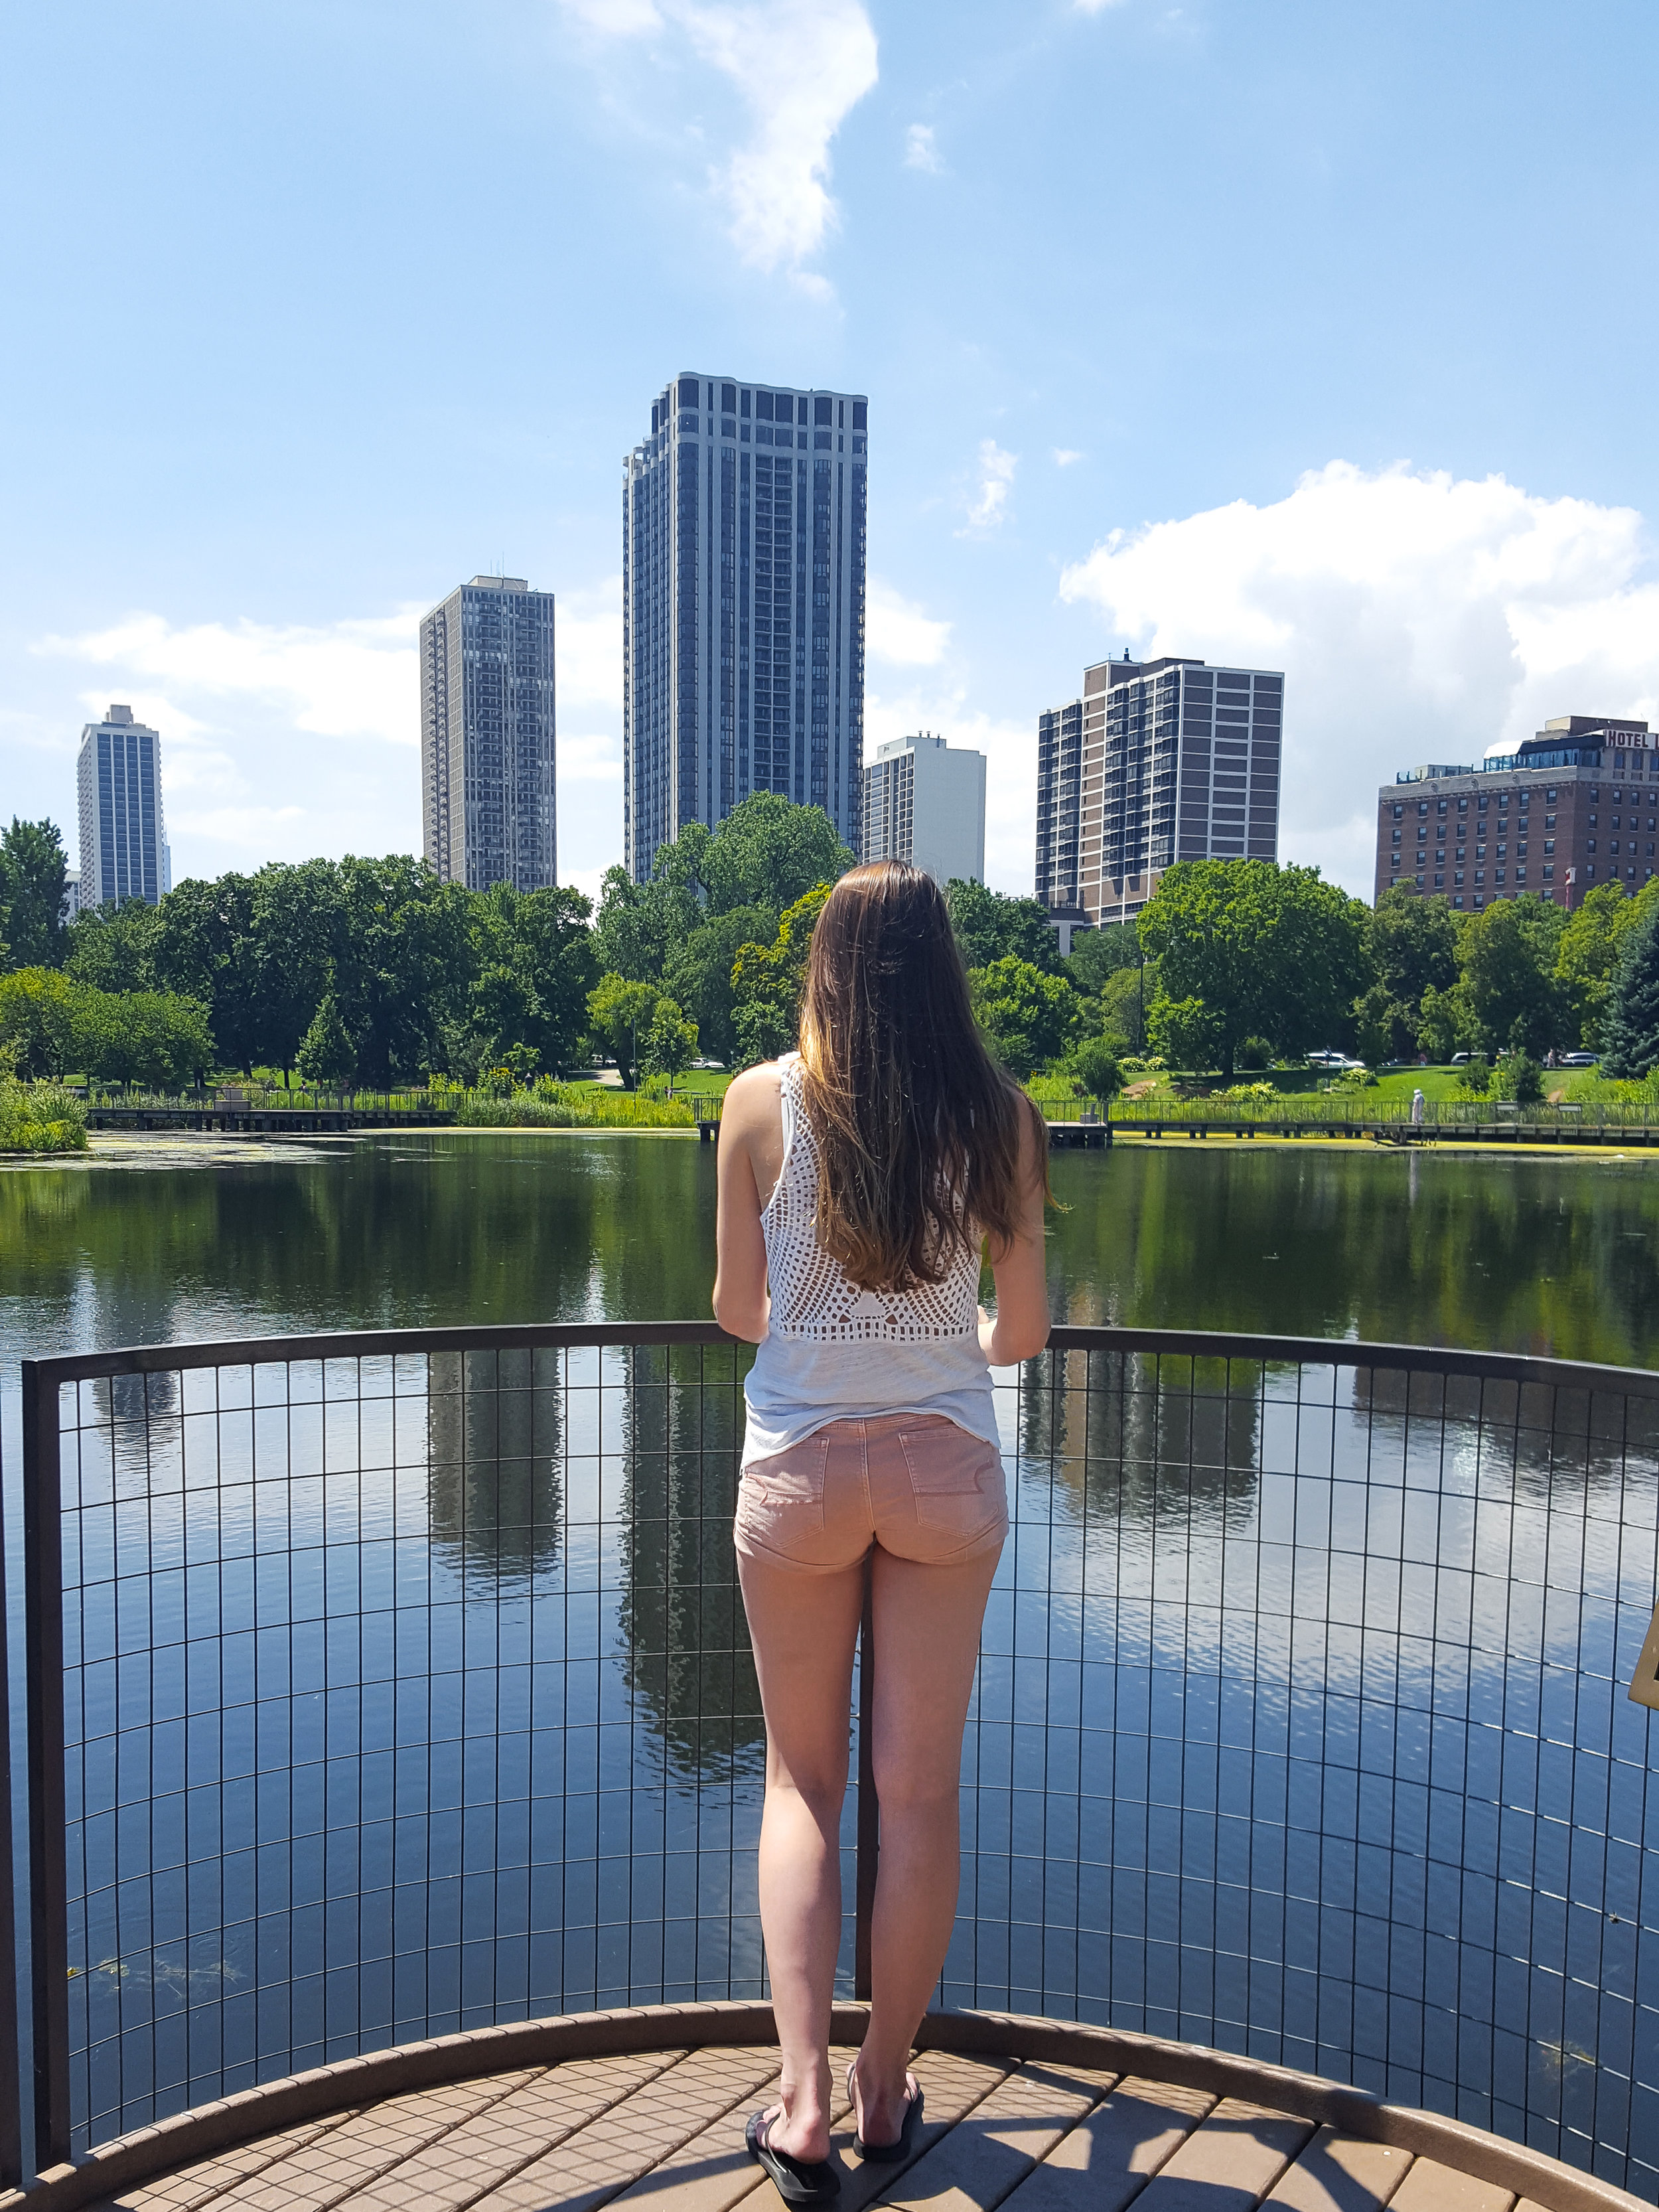 Think zoo pics, greenery, and pond reflections when it comes to photographing Lincoln Park